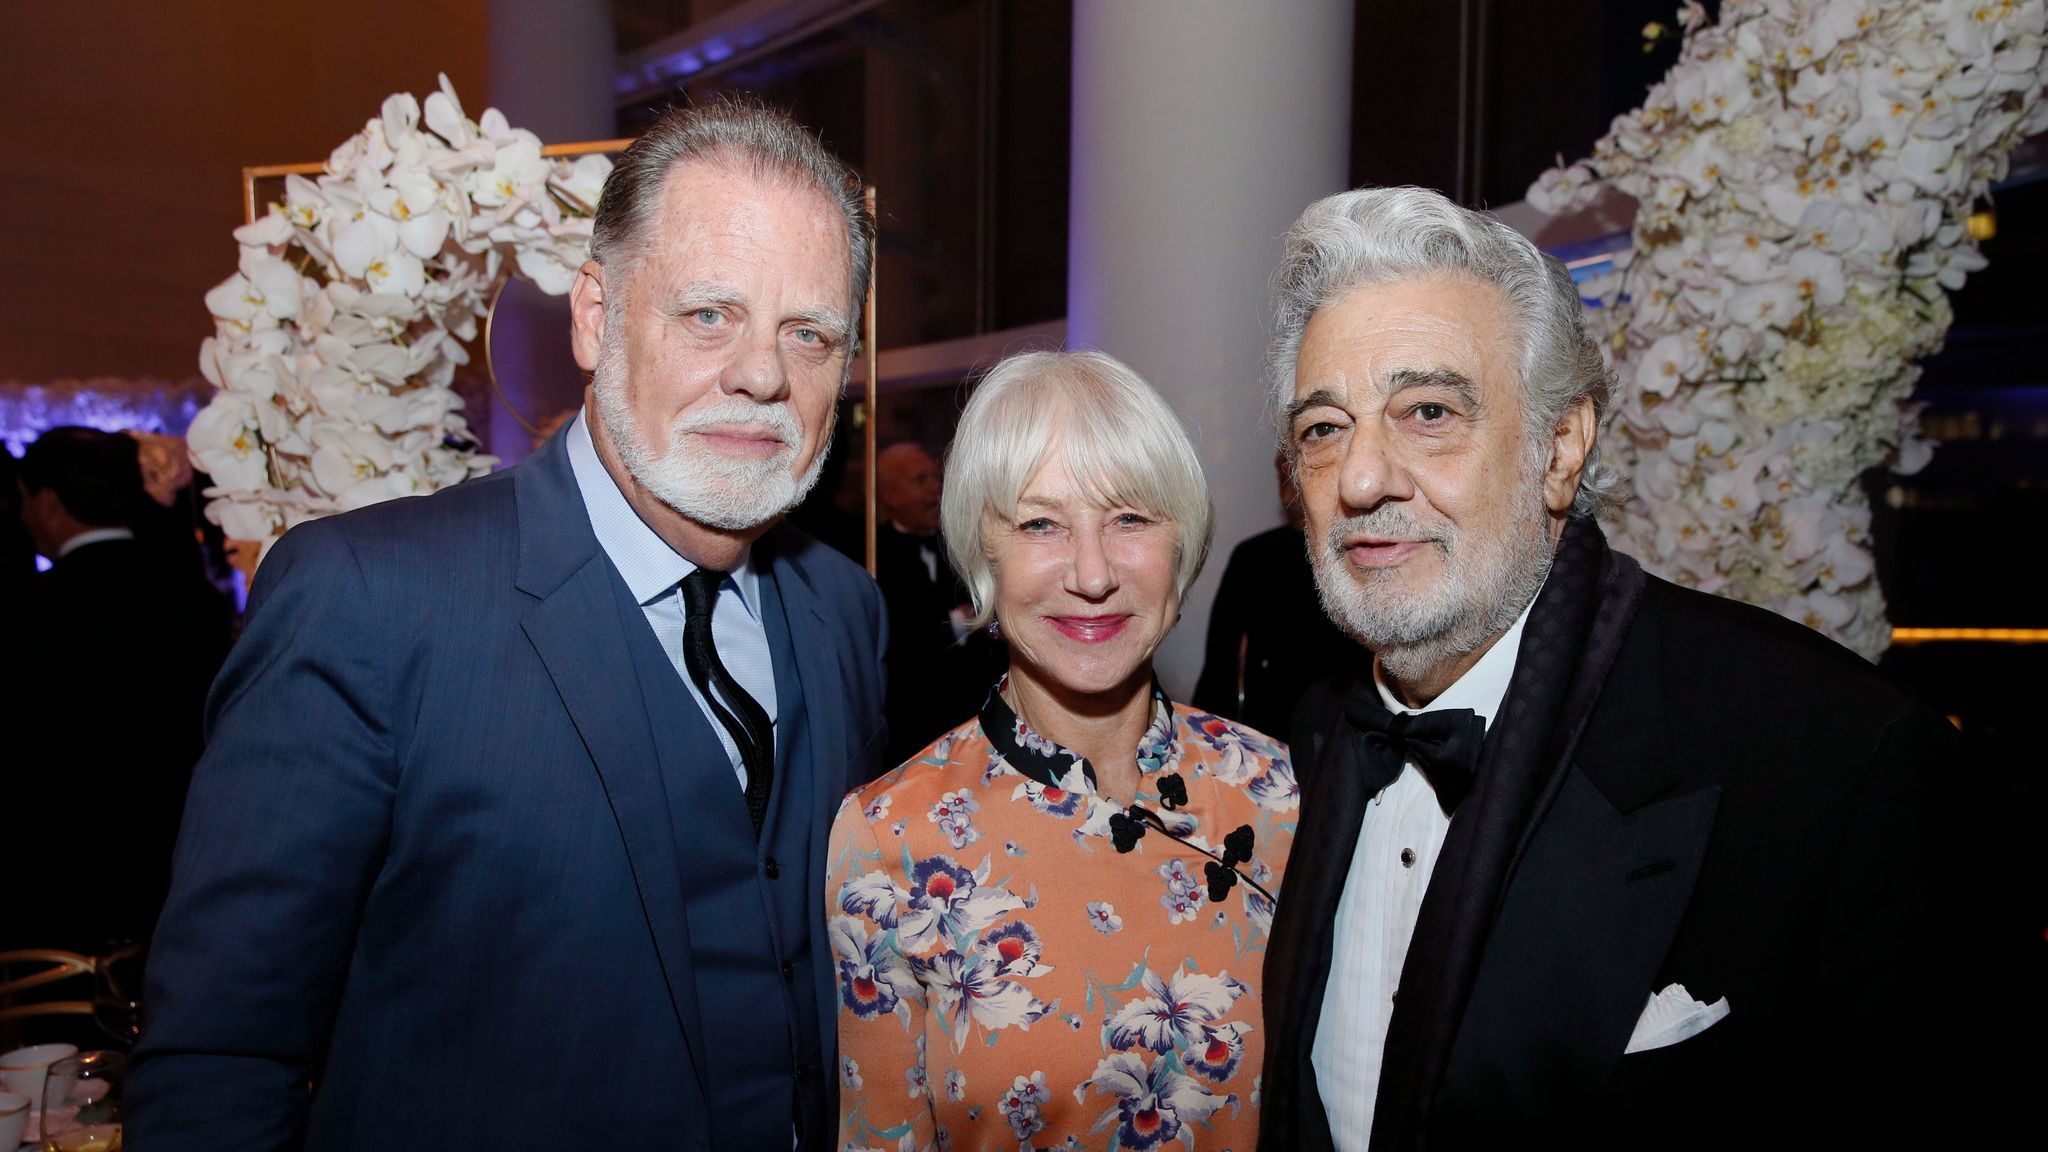 Taylor Hackford, left, Dame Helen Mirren, center and Placido Domingo at the South Coast Plaza Art, Excellence + Friendship, an evening with the Mariinsky Theatre Orchestra at Segerstrom Center for the Arts Monday, October 30, 2017.